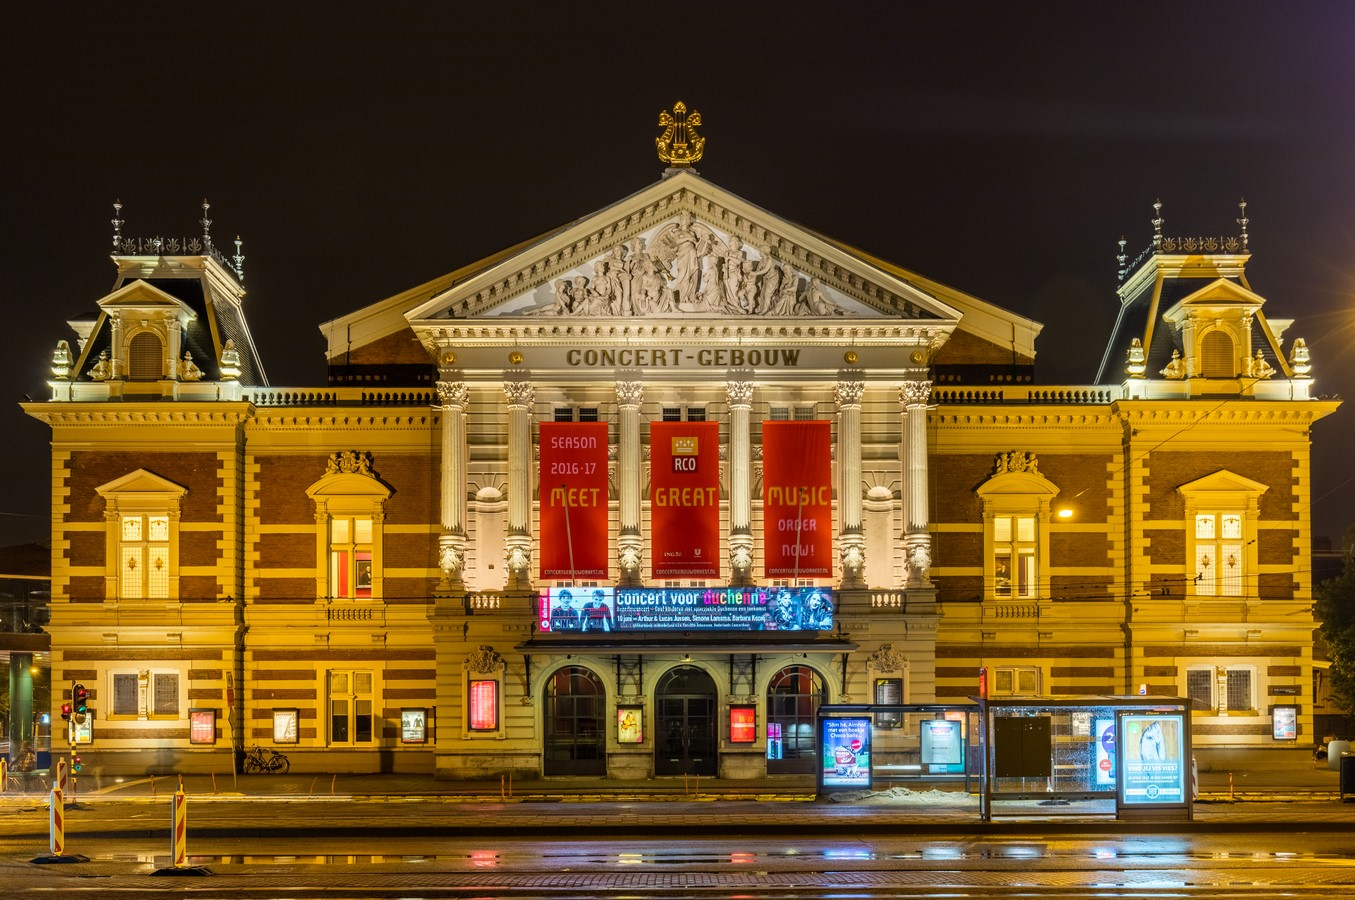 Concertgebouw in Amsterdam, Netherlands Applying acoustics without science - Sheet1